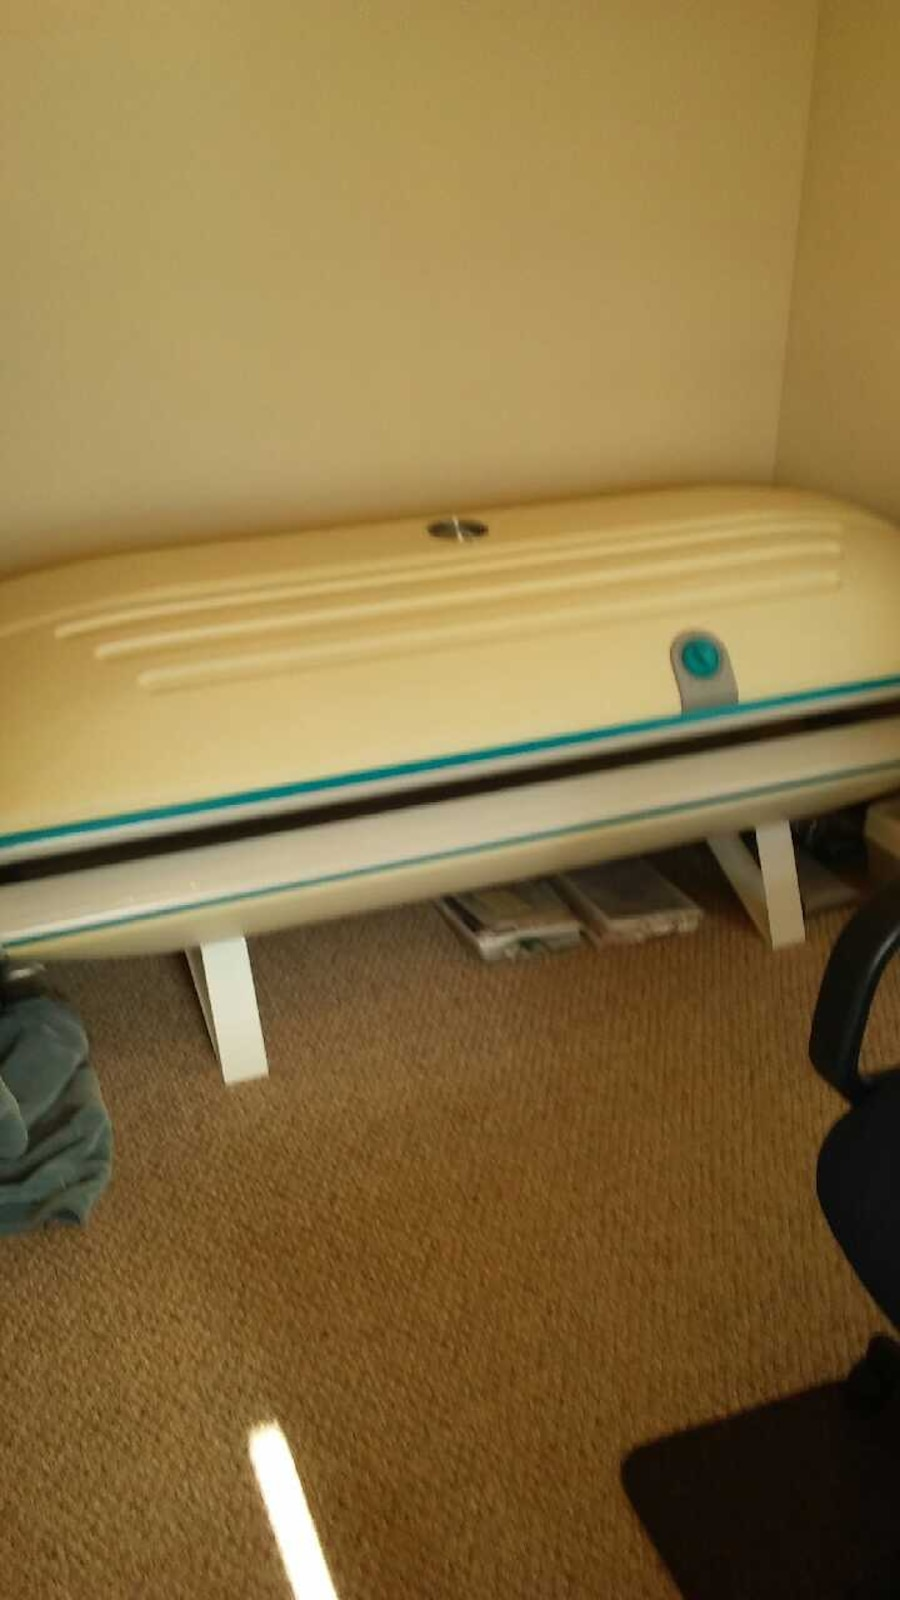 sunquest pro 16se tanning bed manual